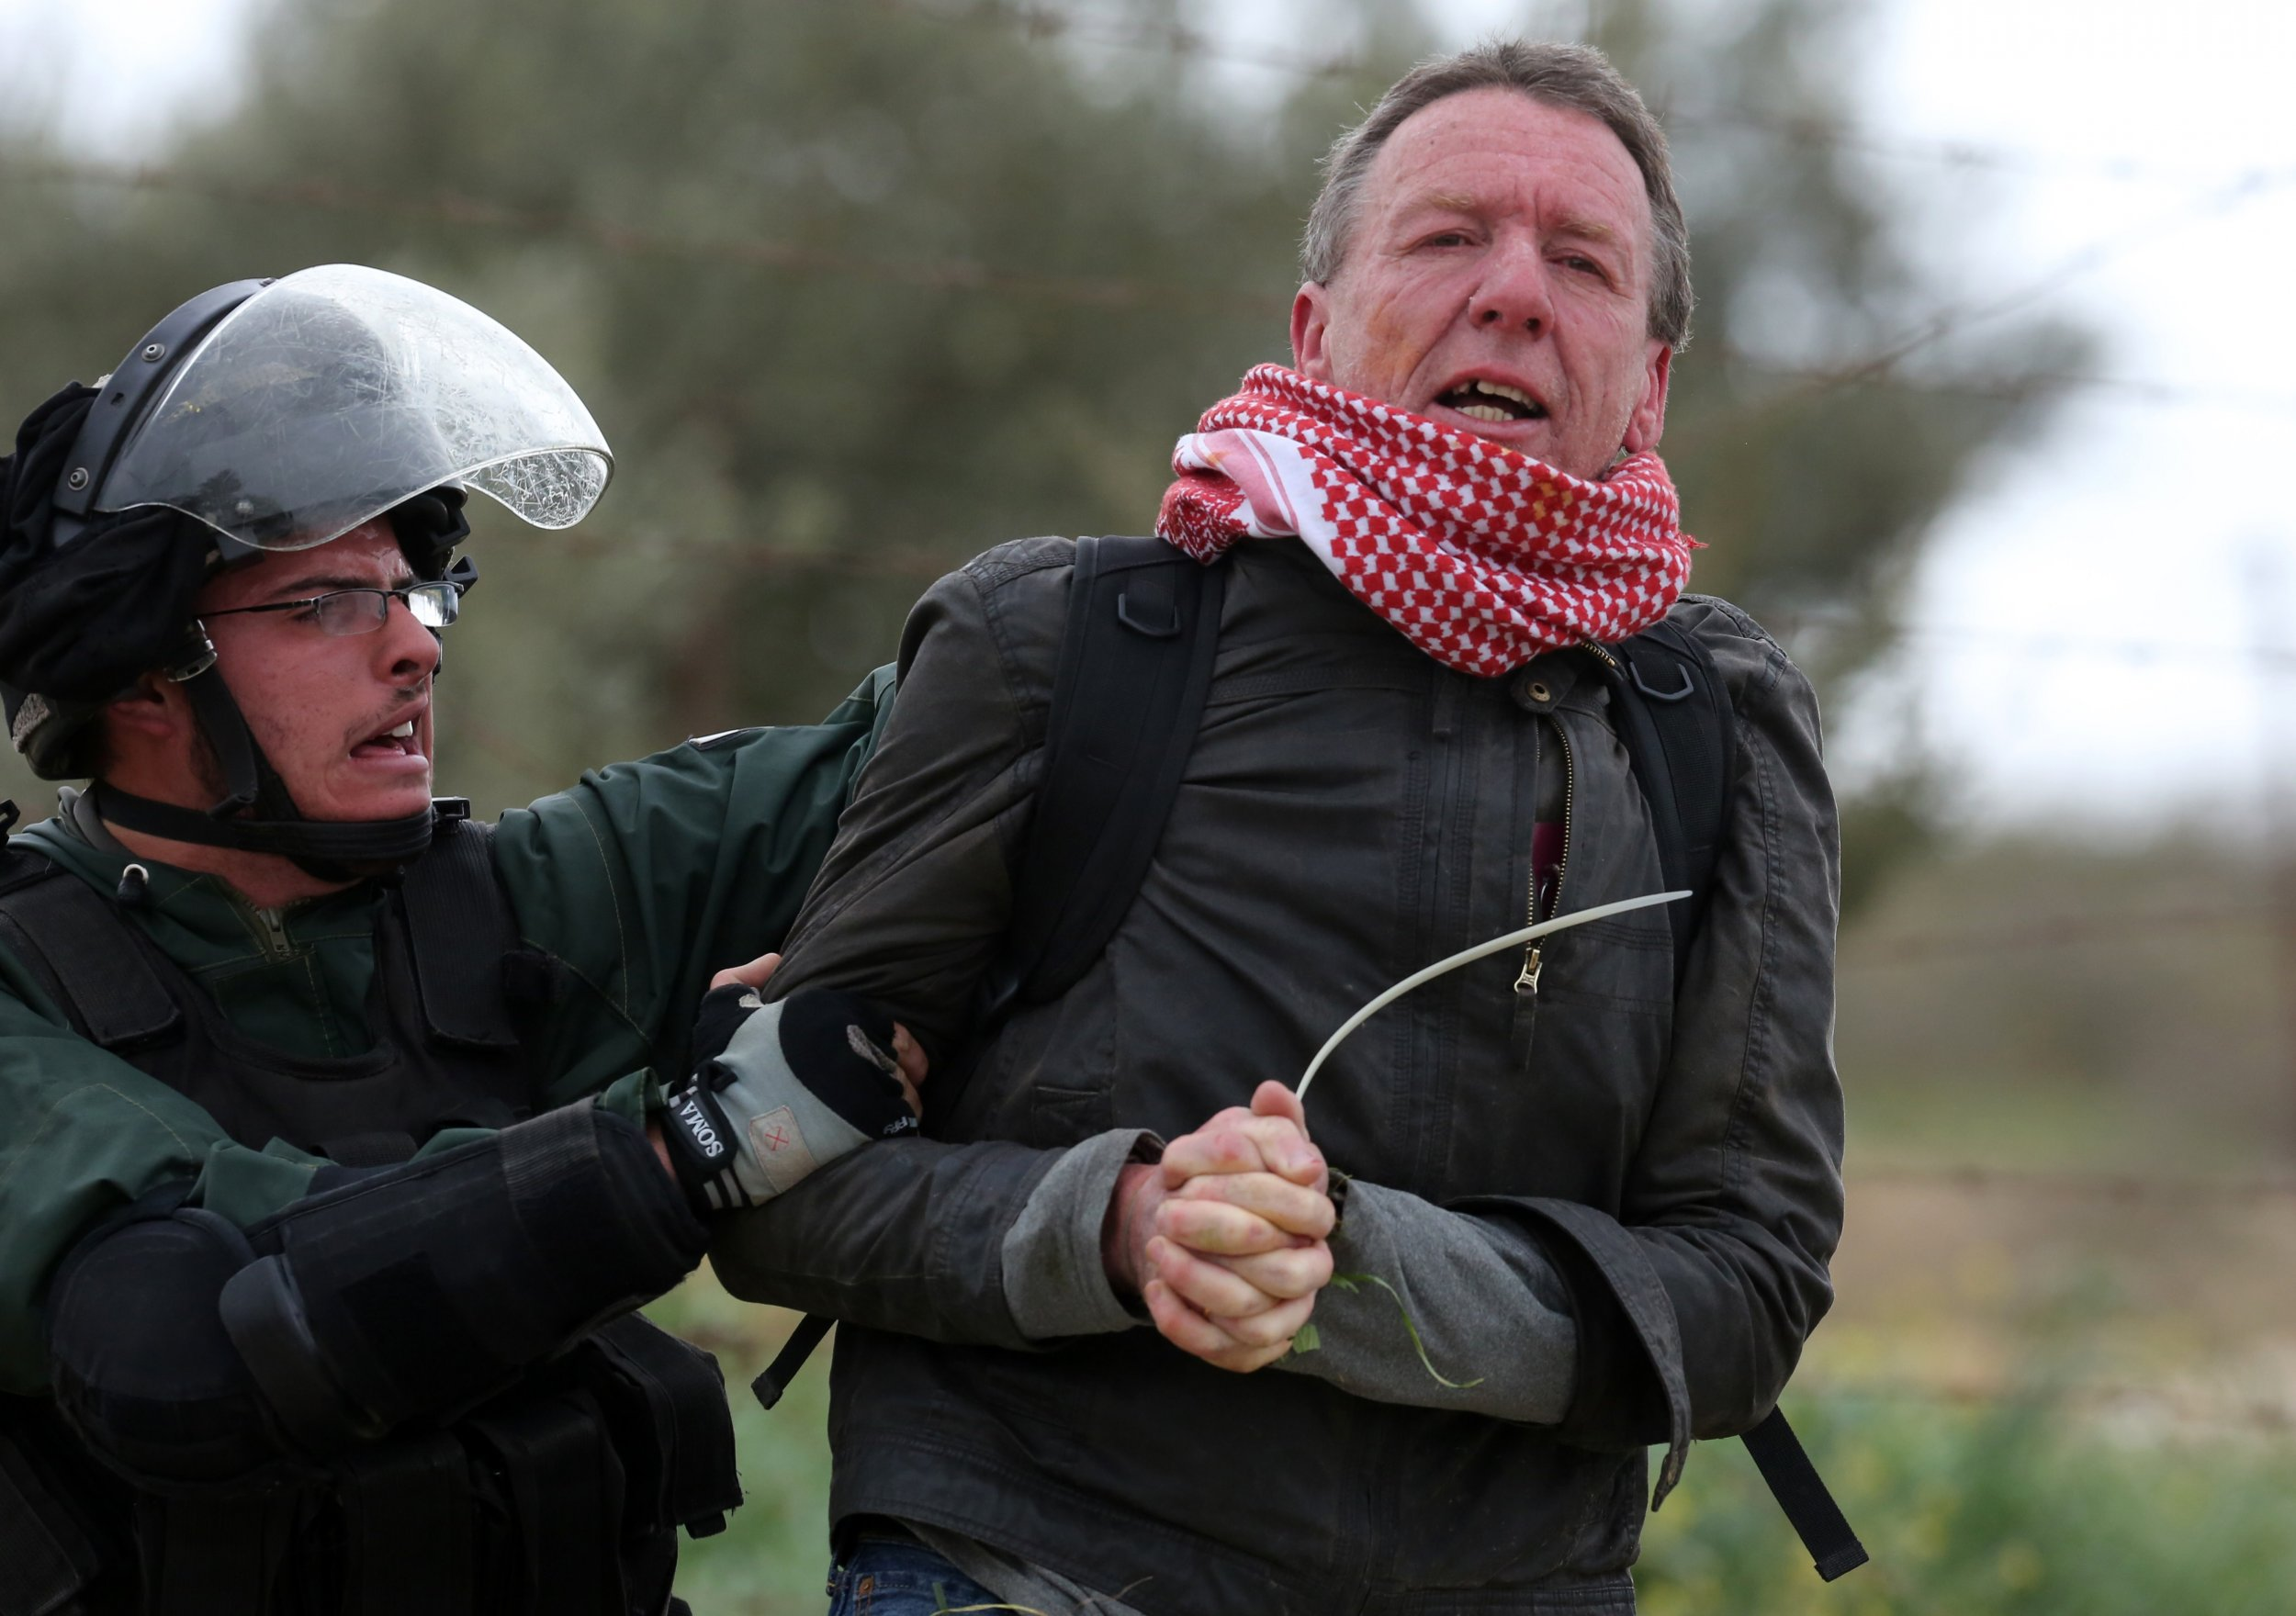 British activist detained by Israeli soldiers in the West Bank